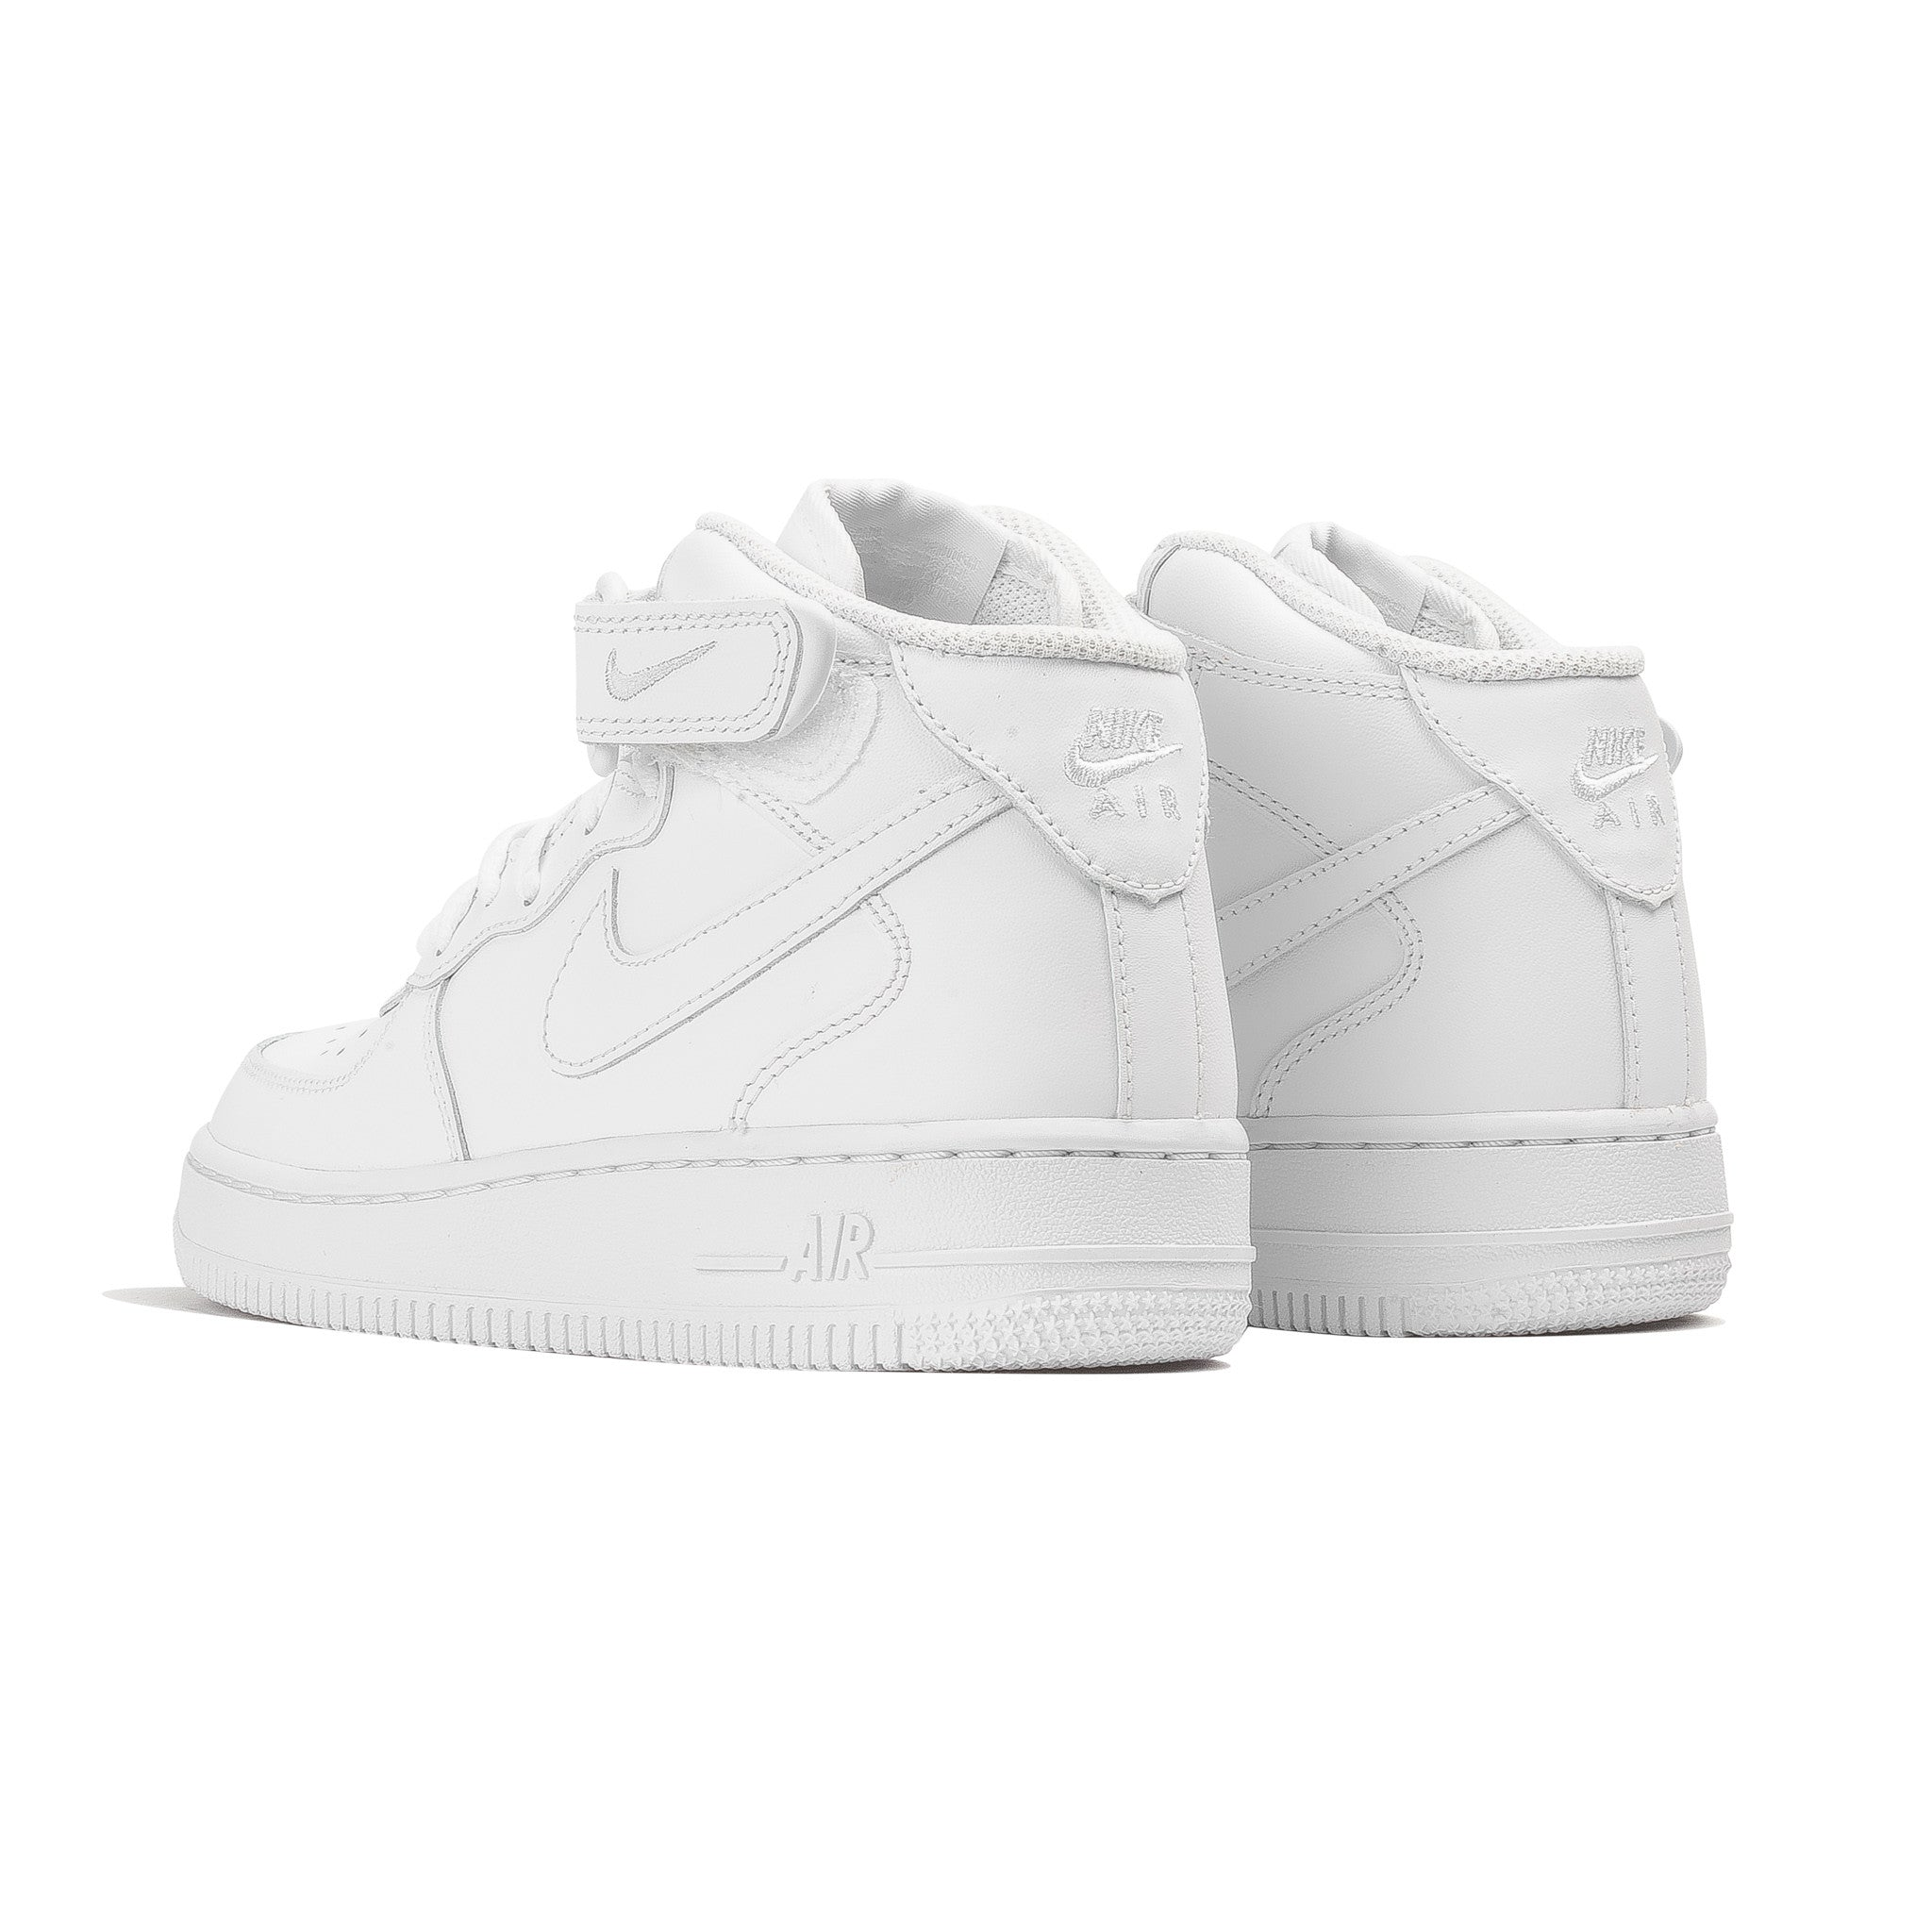 WMNS Air Force 1 Mid 366731-100